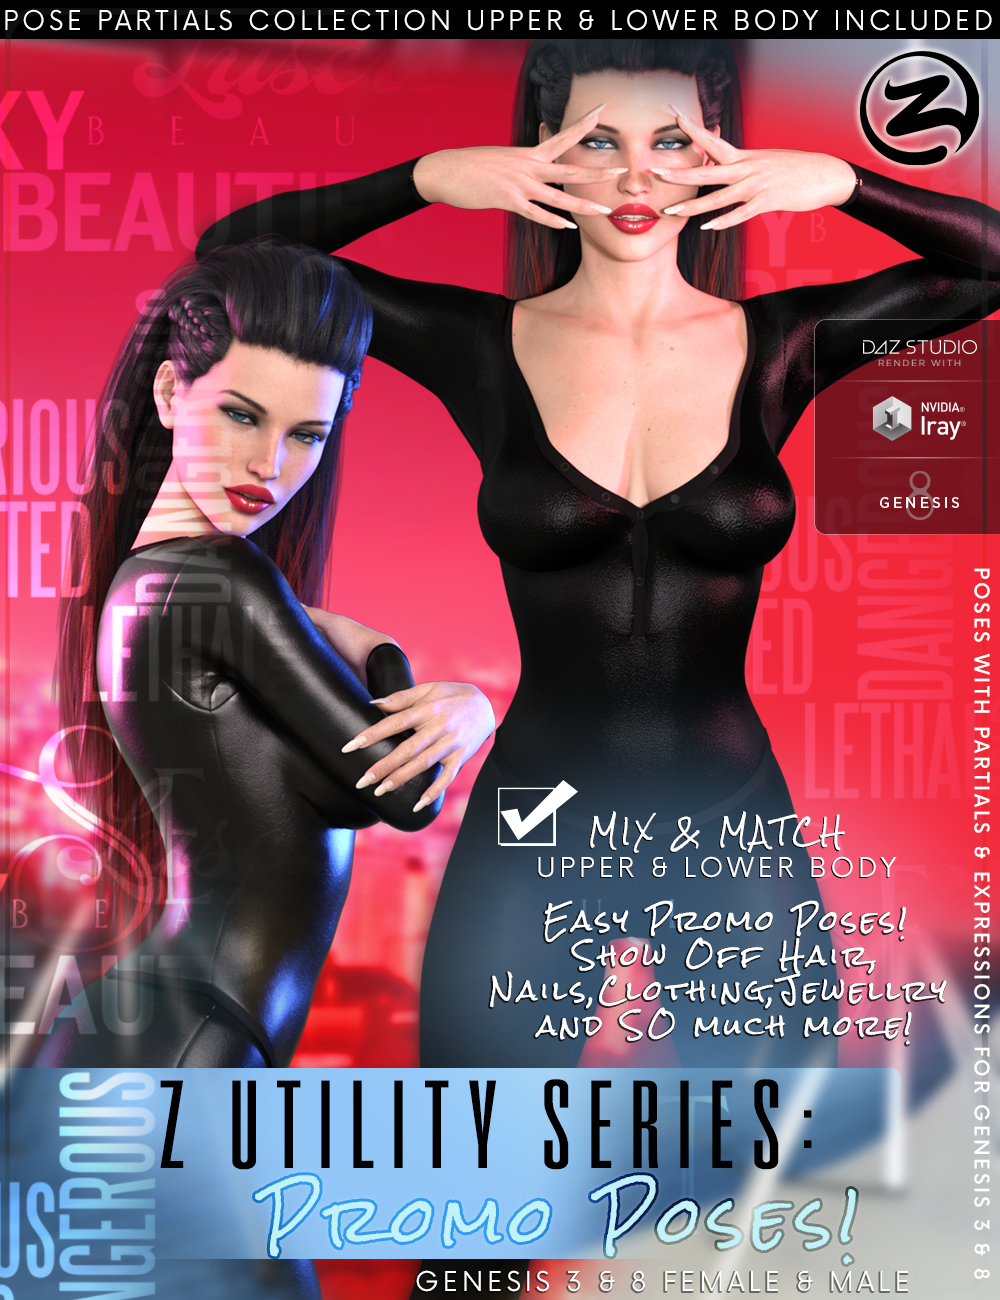 Z Utility Series: Promo Poses and Partials for Genesis 3 & 8 by: Zeddicuss, 3D Models by Daz 3D